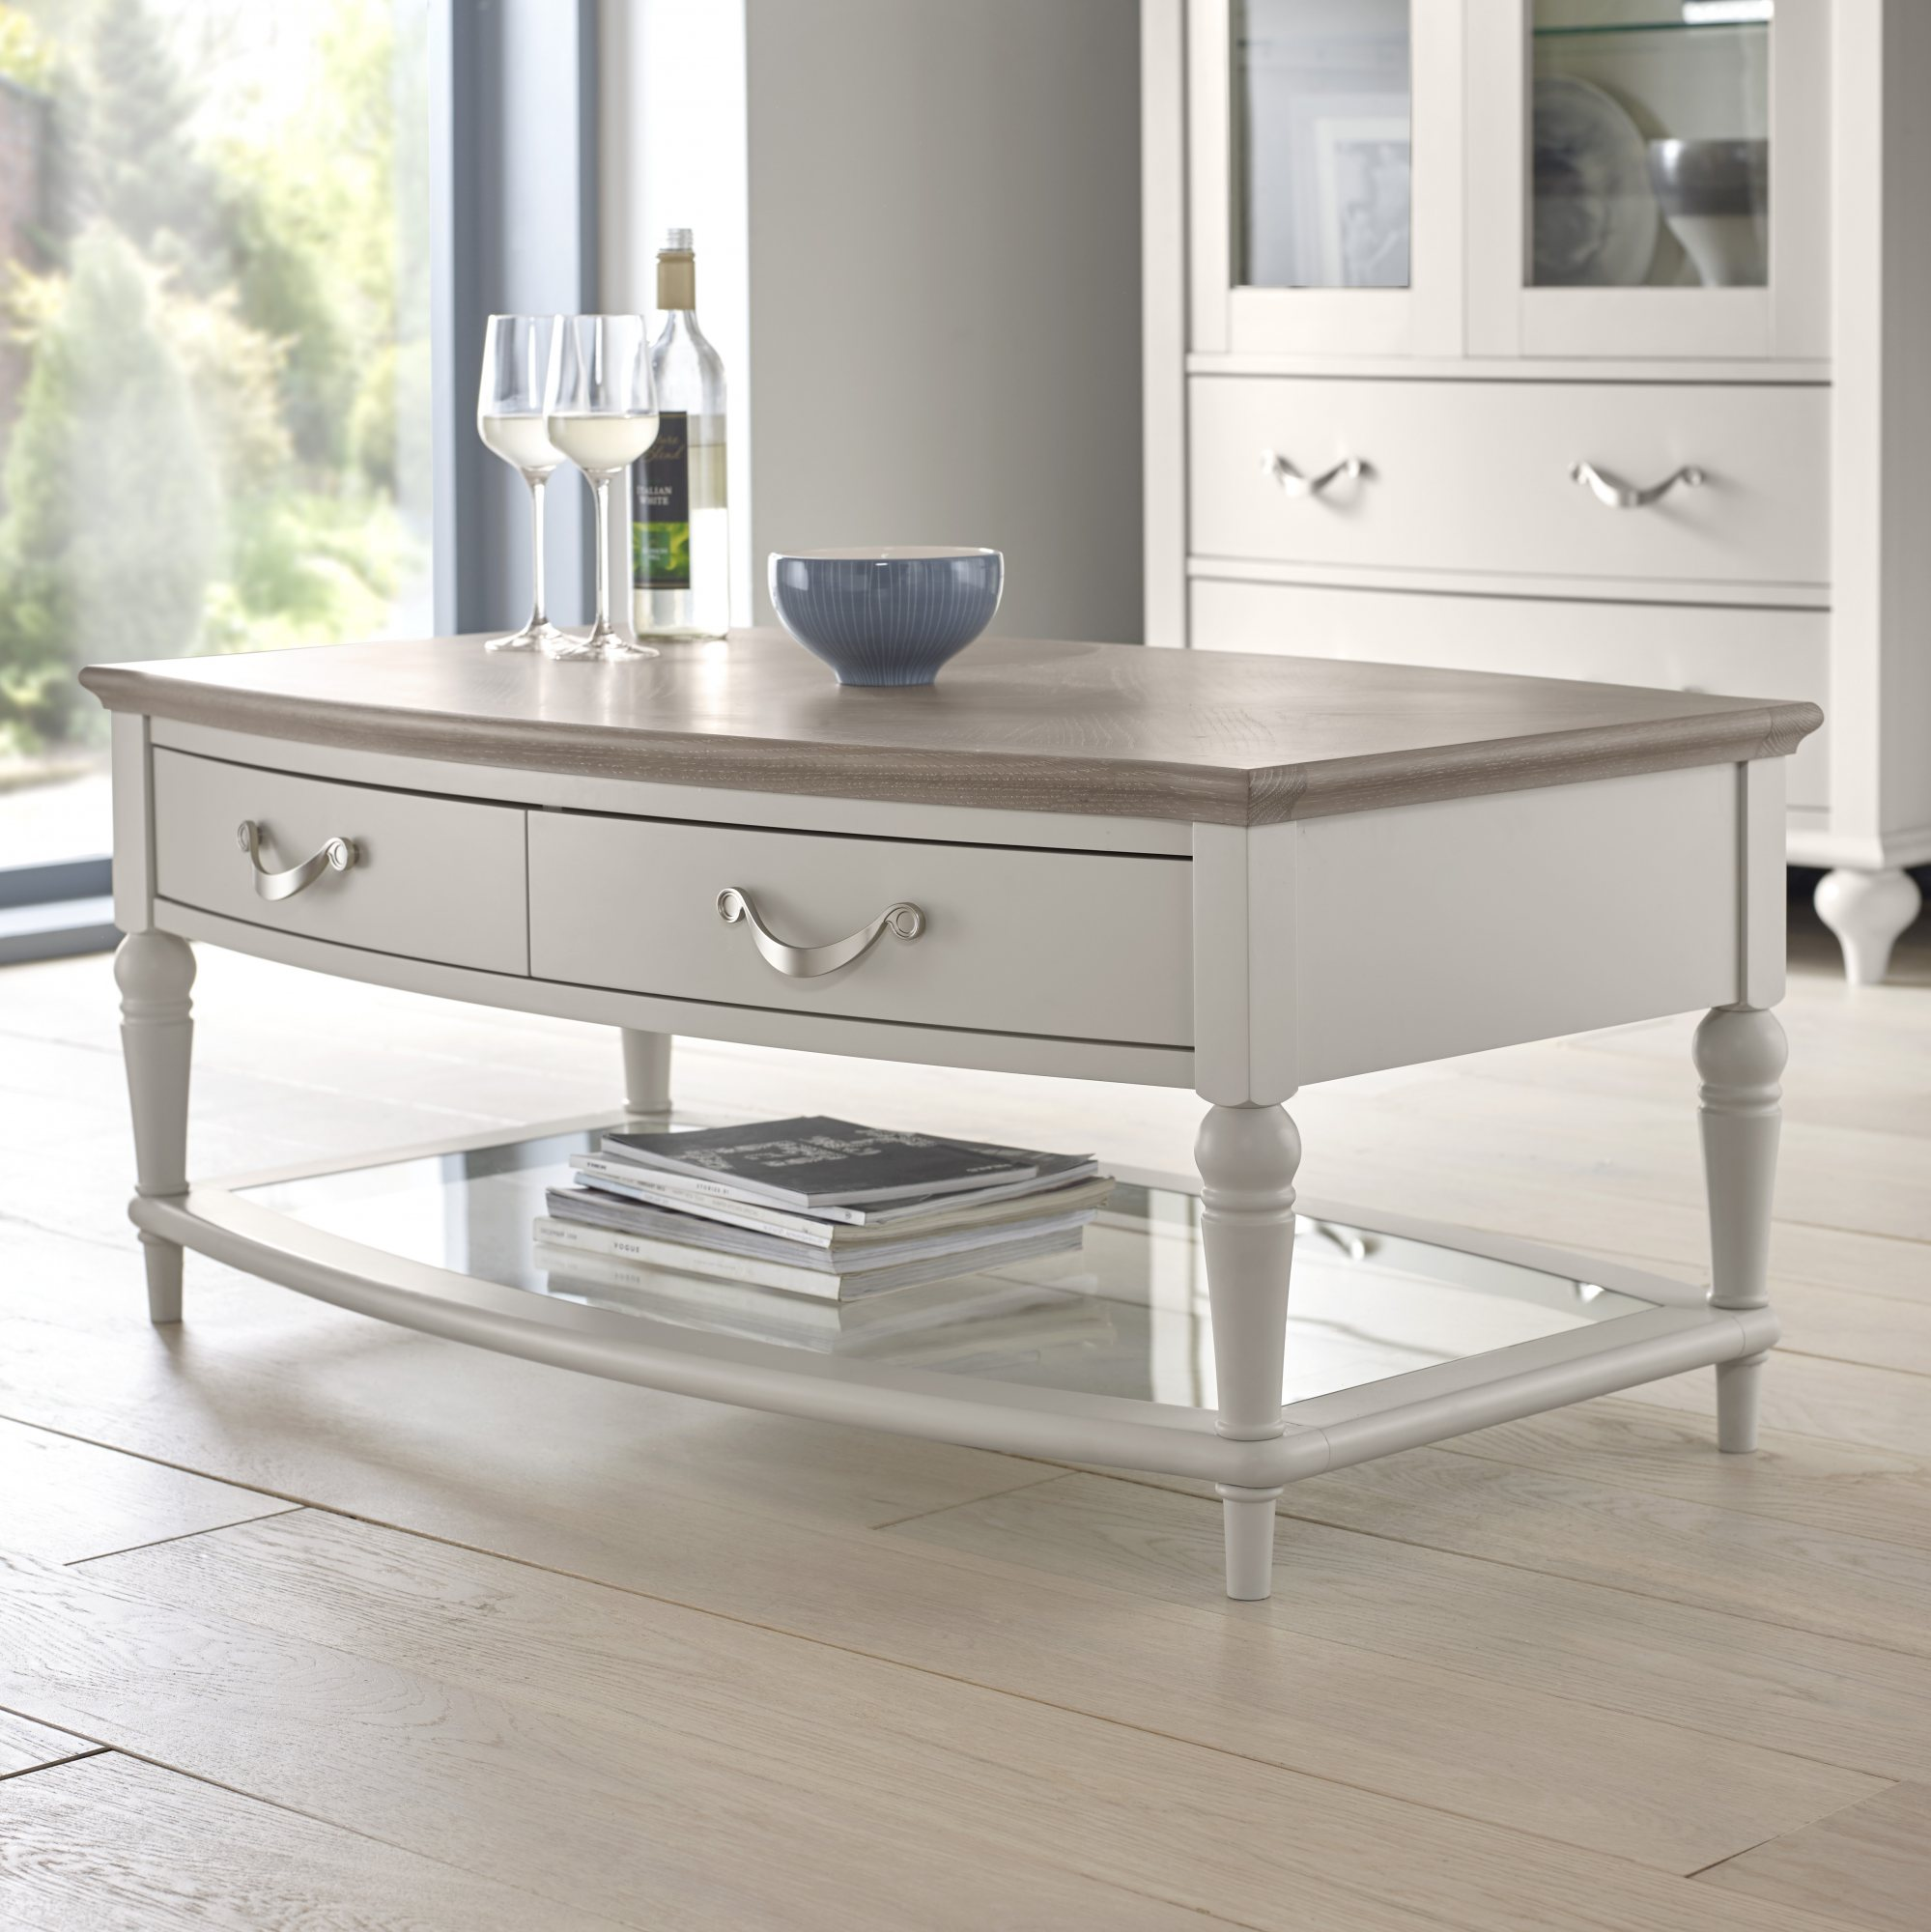 MONICA GREY COFEE TABLE